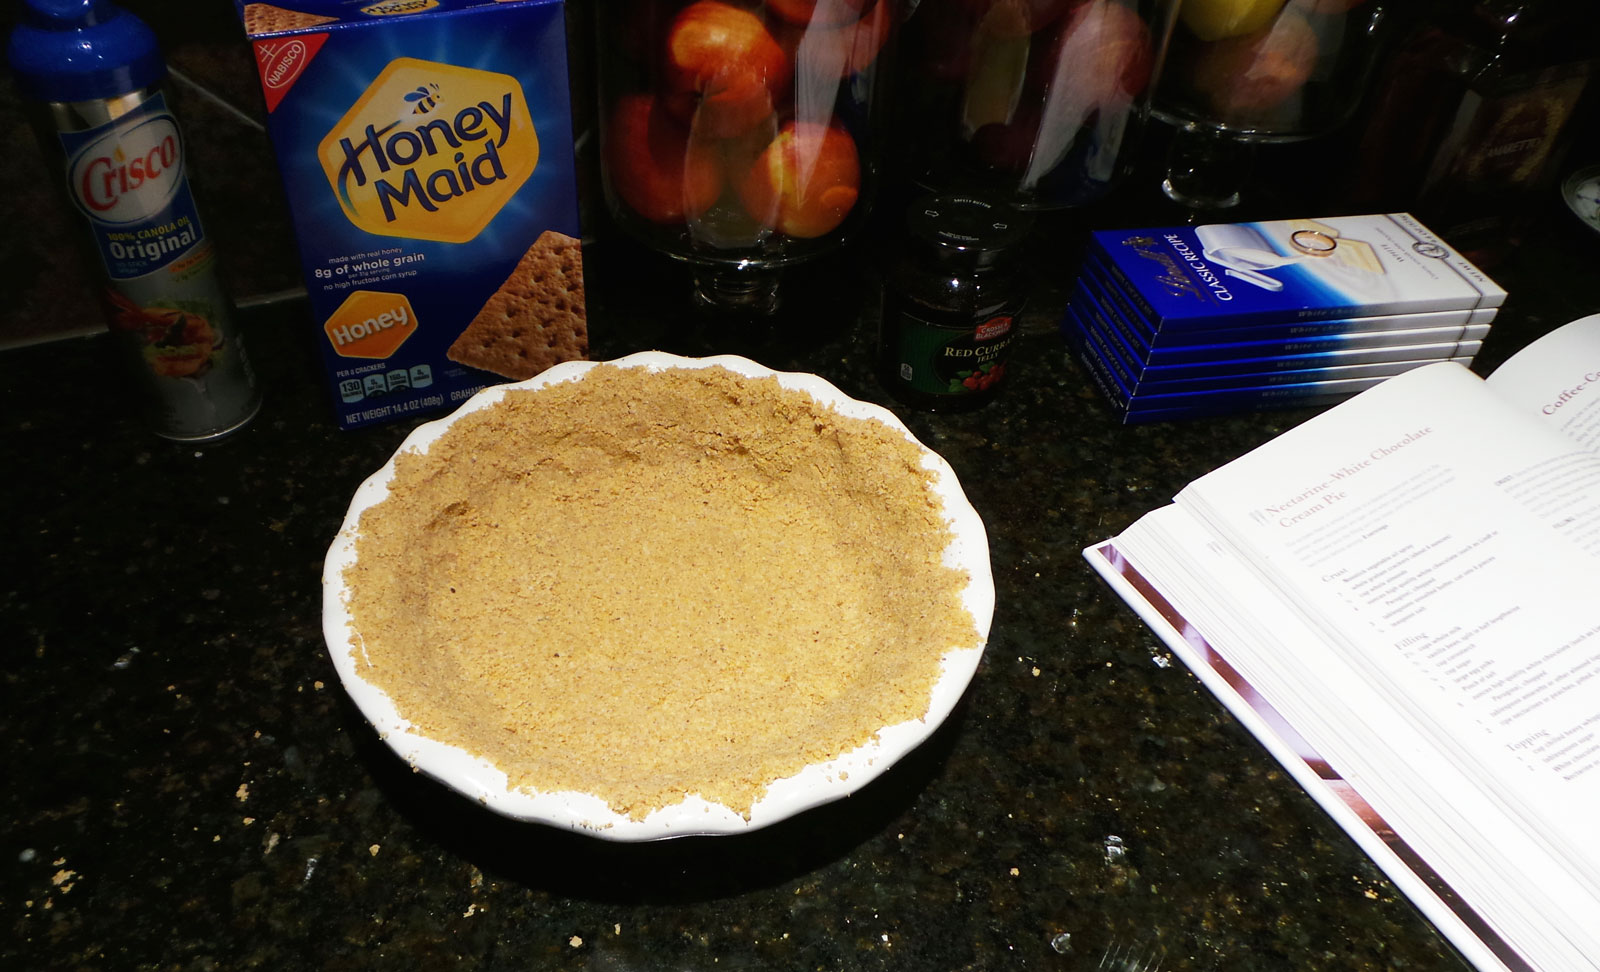 Packing Graham Cracker Crust Into Pie Dish